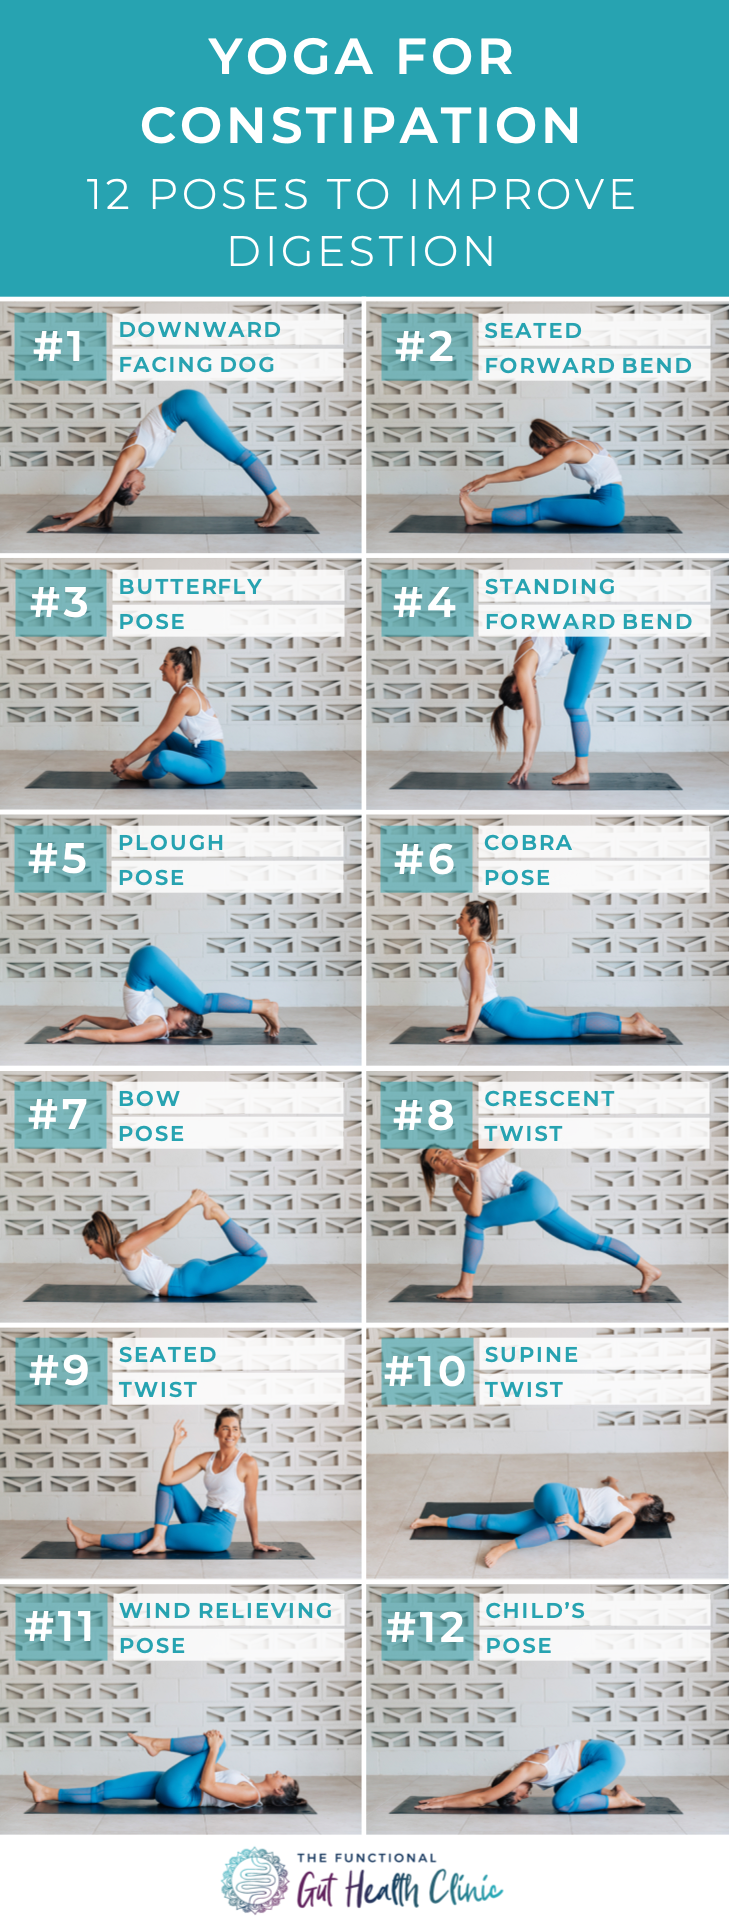 Yoga for Constipation - 35 Poses to Improve Digestion